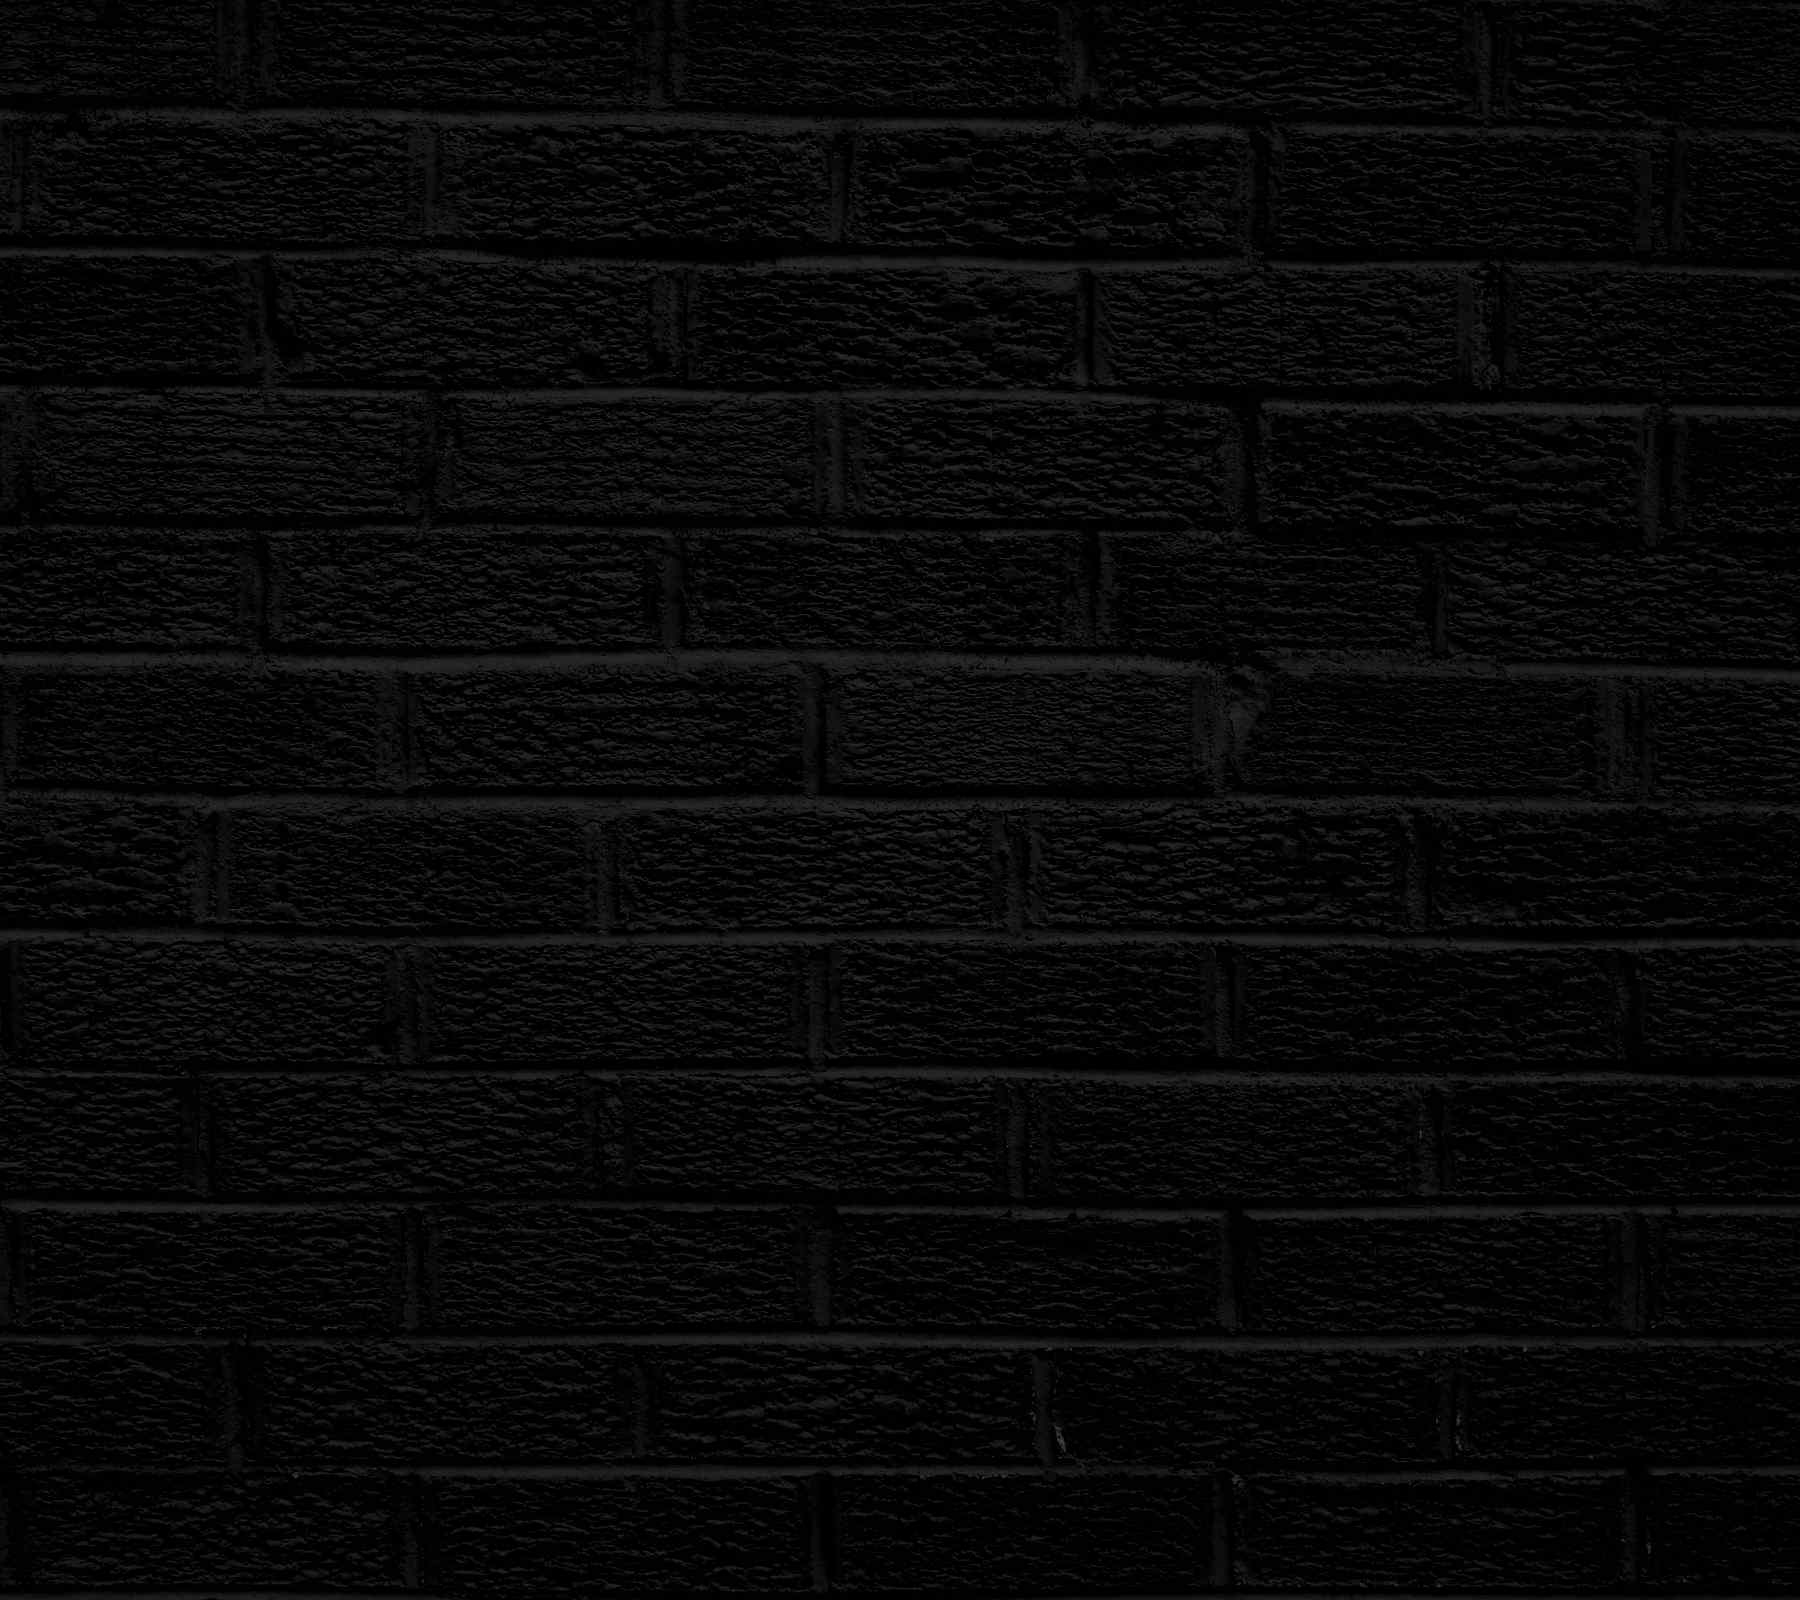 Black brick wall background 1800x1600 background image for Black 3d brick wallpaper